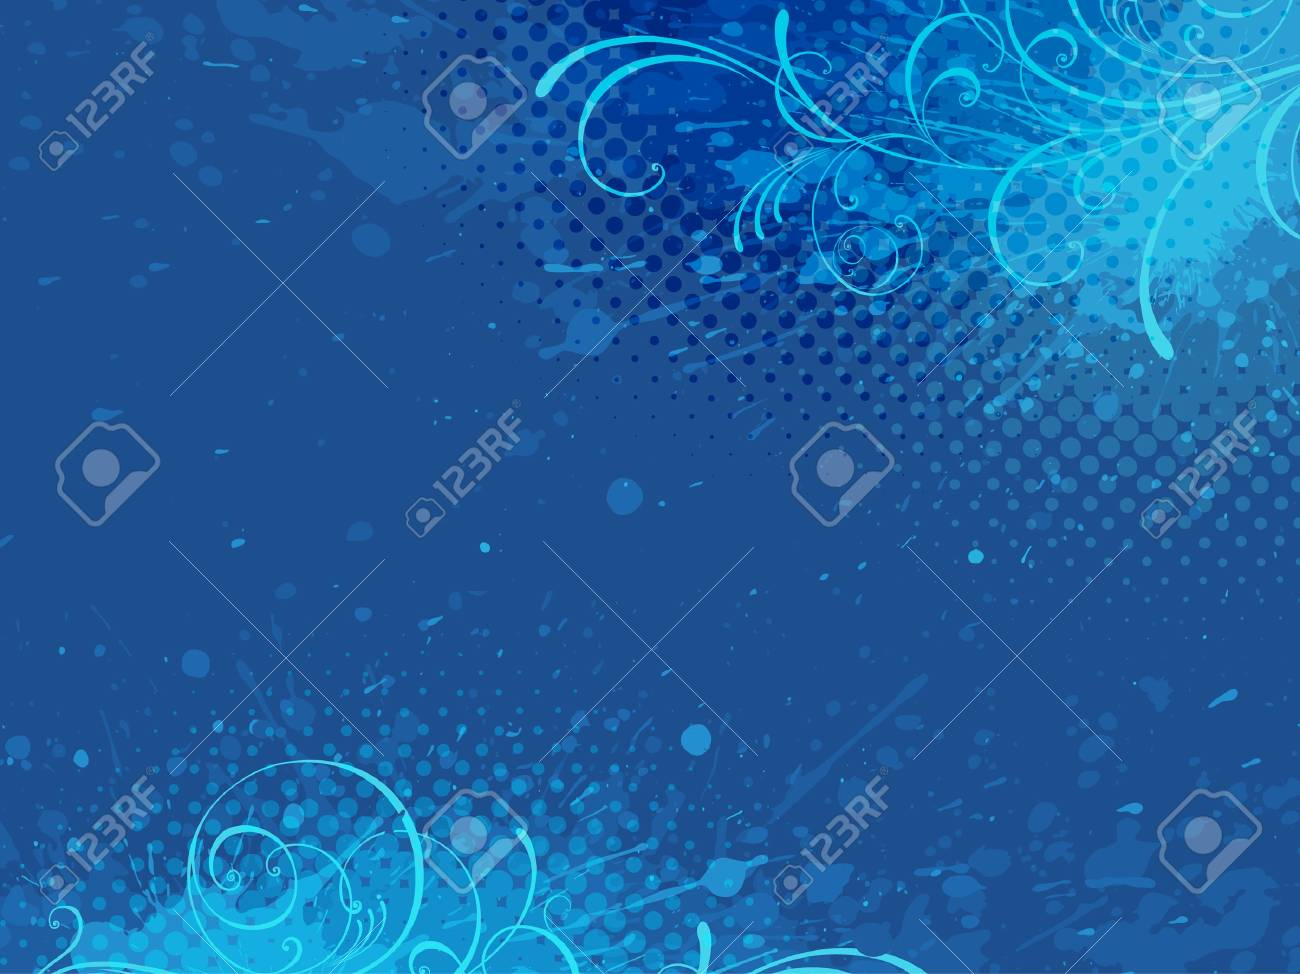 floral background, floral style - 7326634